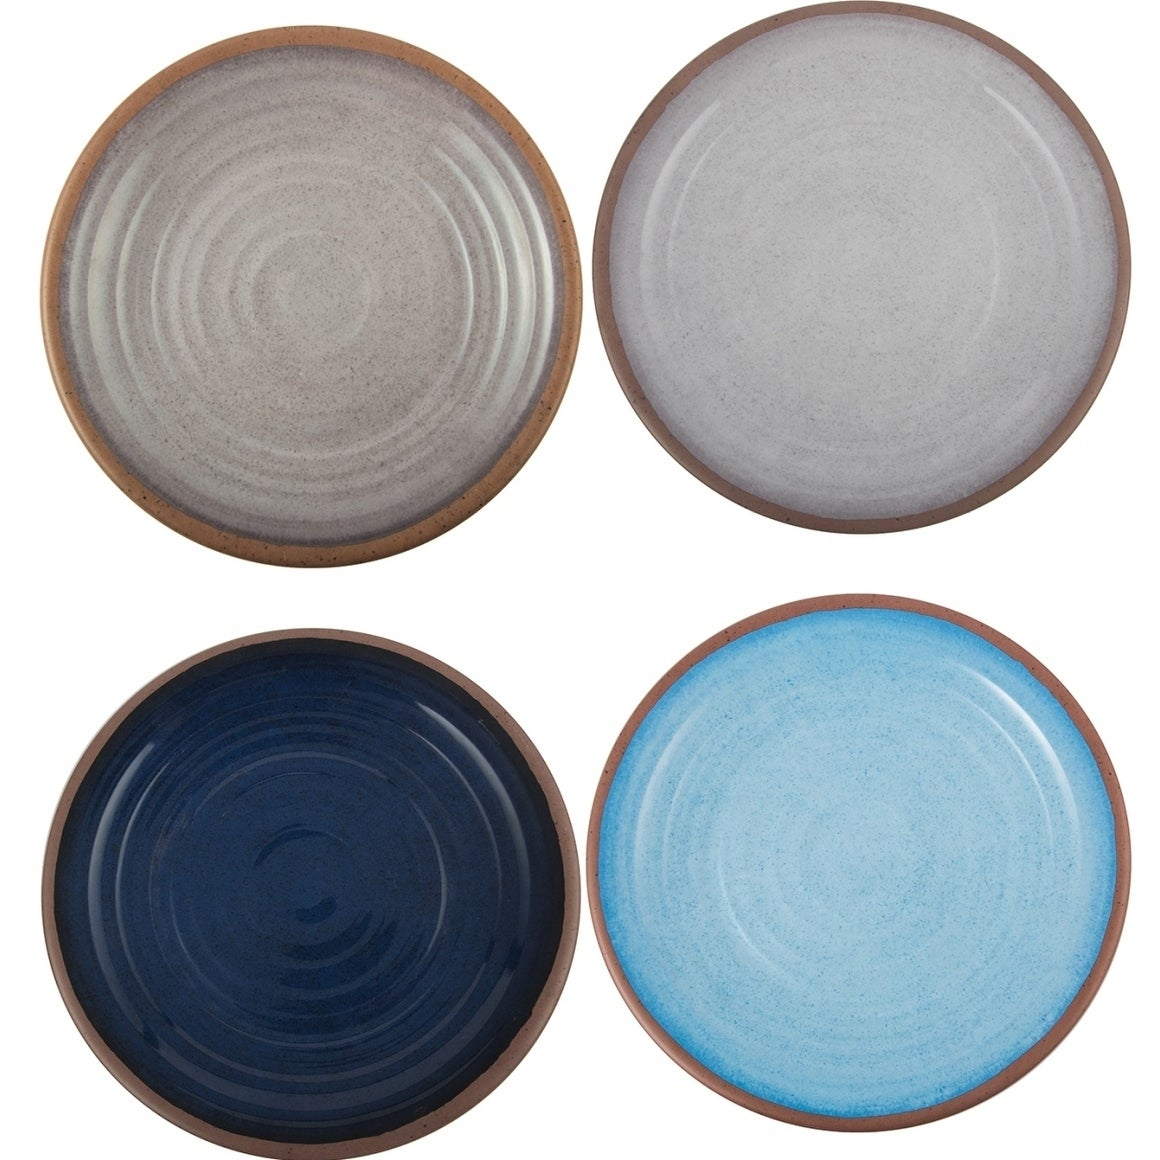 Rustic Egg Collection Melange 6 Piece 100 Melamine Dinner Plate Set Shatter Proof And Chip Resistant Melamine Dinner Plates Color Blue